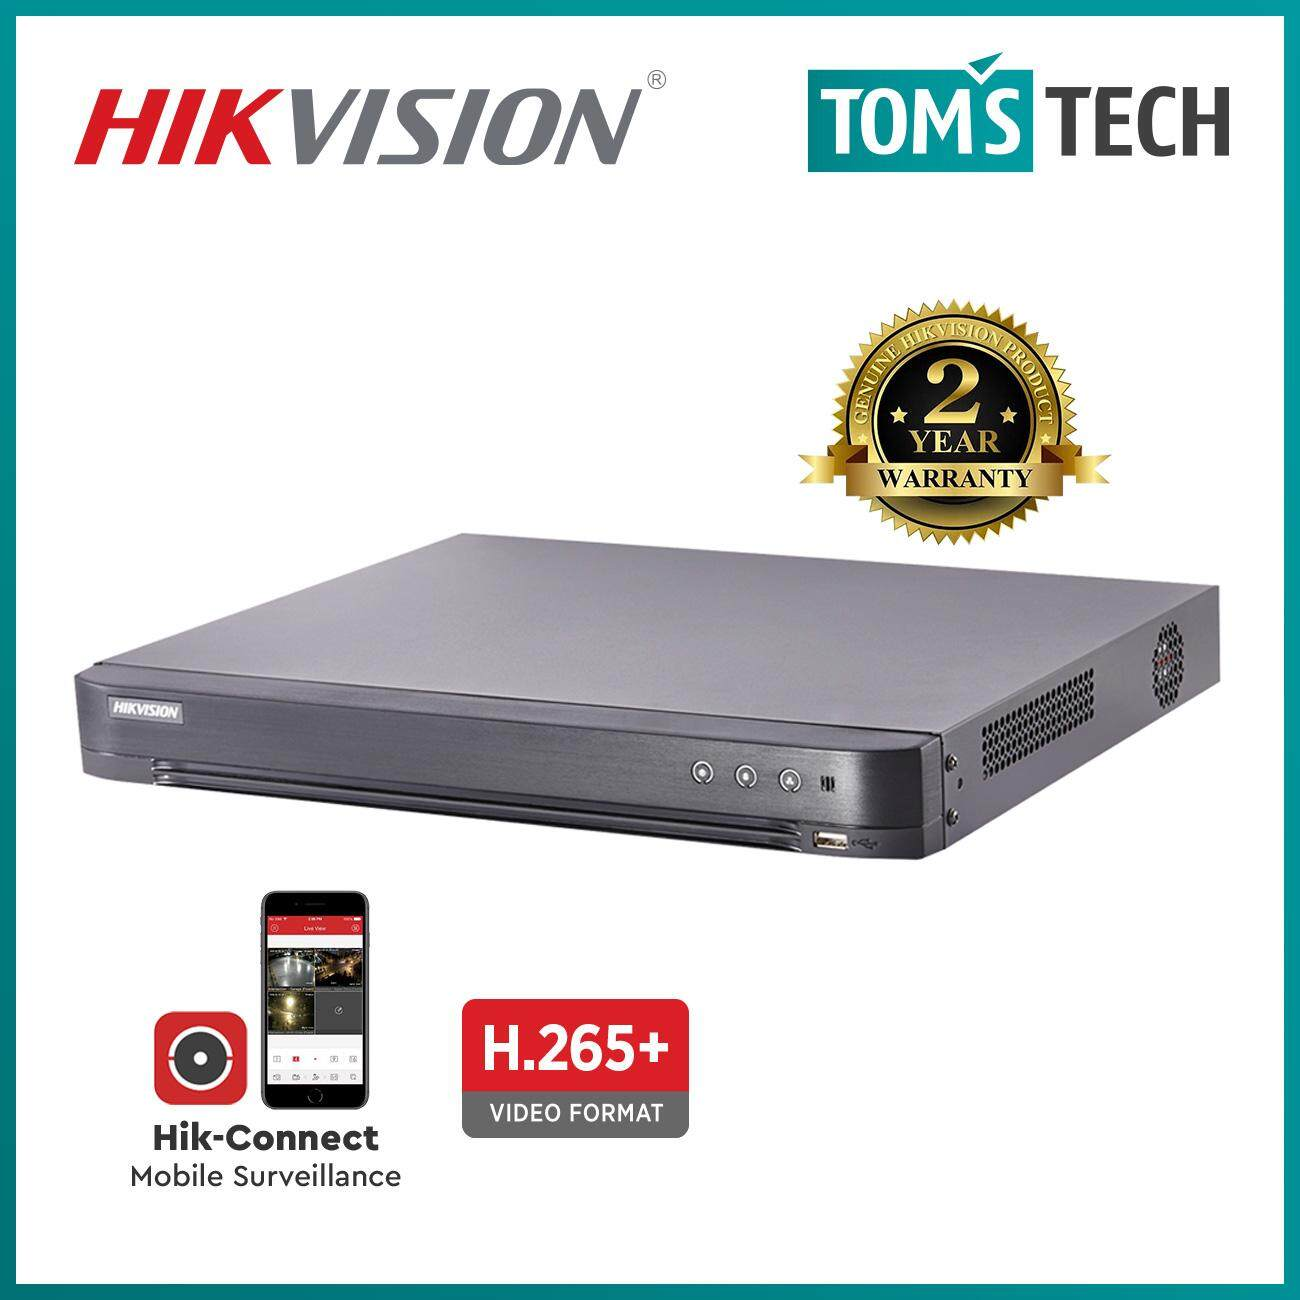 Hikvision DS-7208HQHI-K1 8CH 2MP 1080P Turbo HD 4 0 CCTV Recorder DVR -  Tomstech